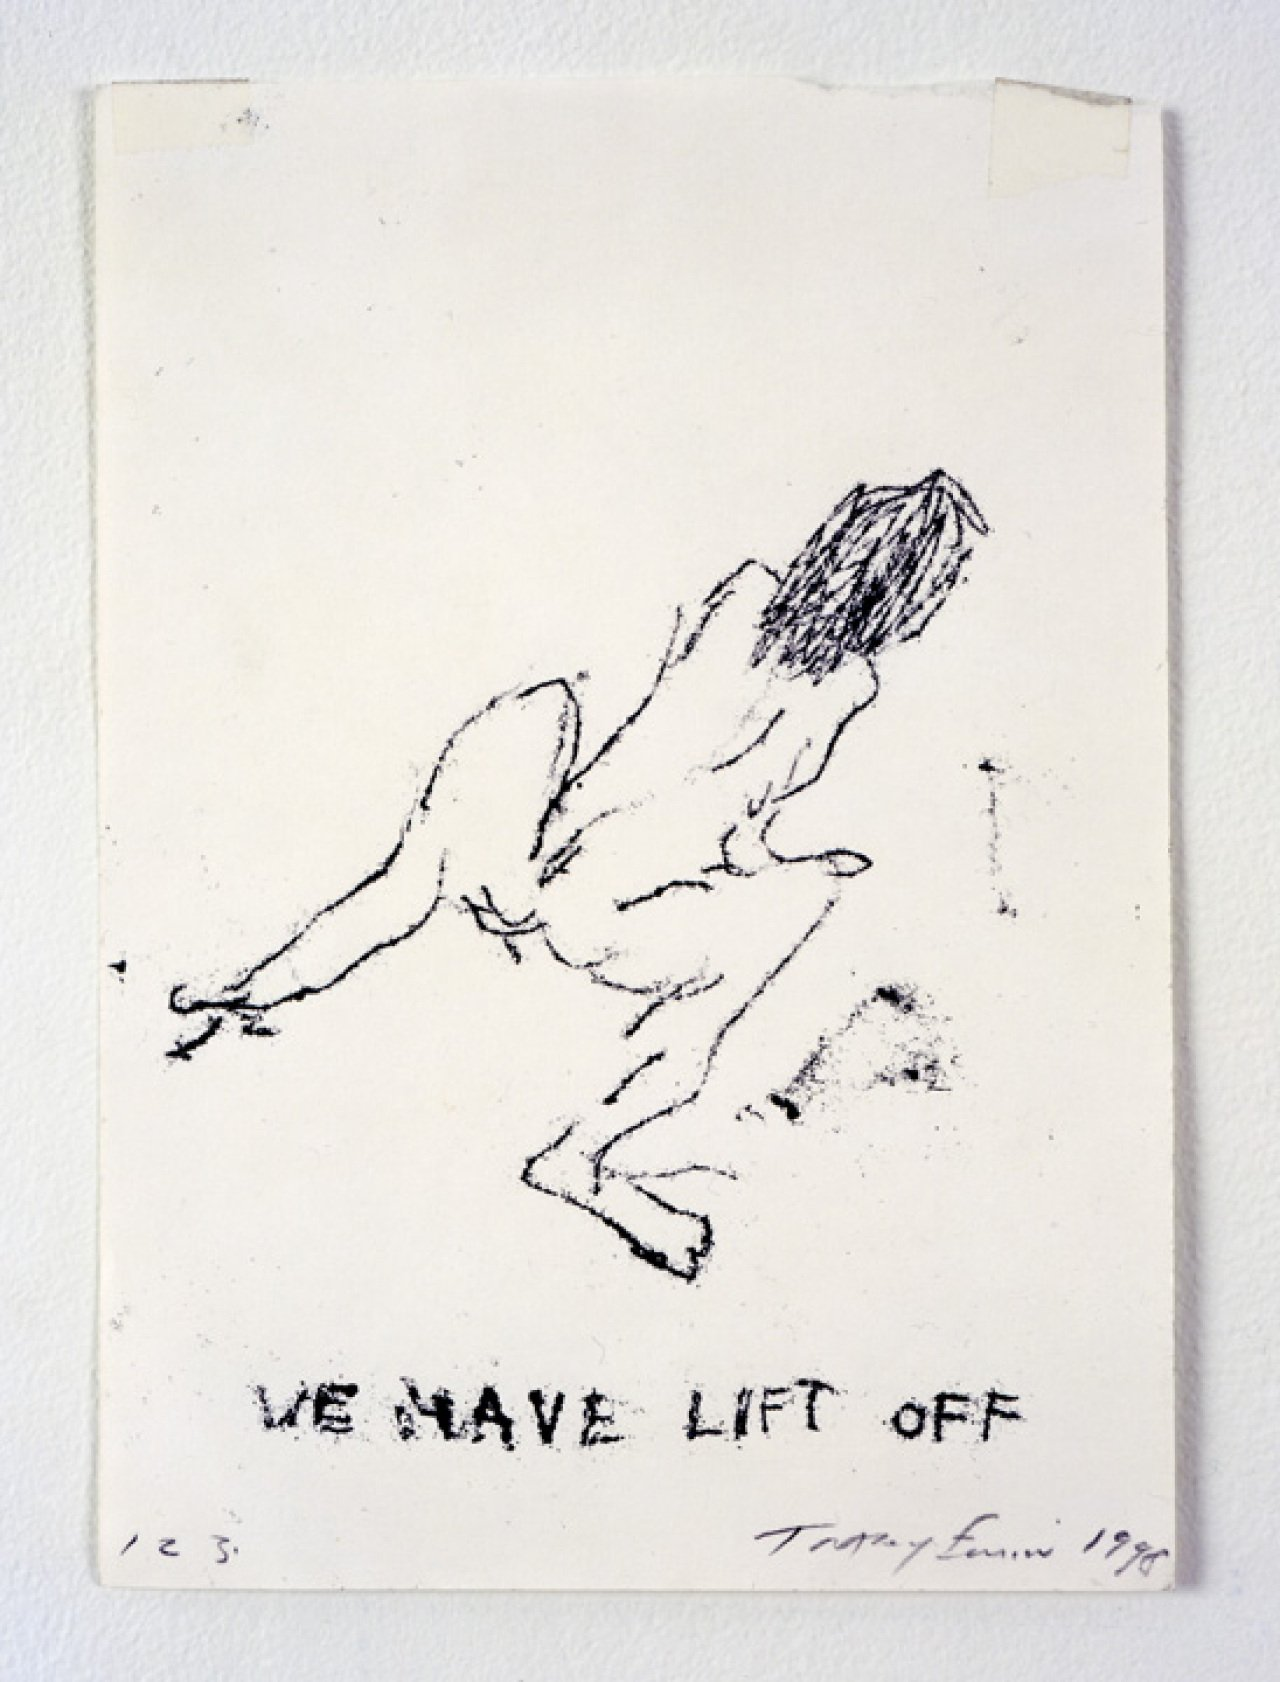 art criticism has become too fawning time for a best hatchet job tracey emin draws more life than he does but not half as well as any newspaper cartoonist